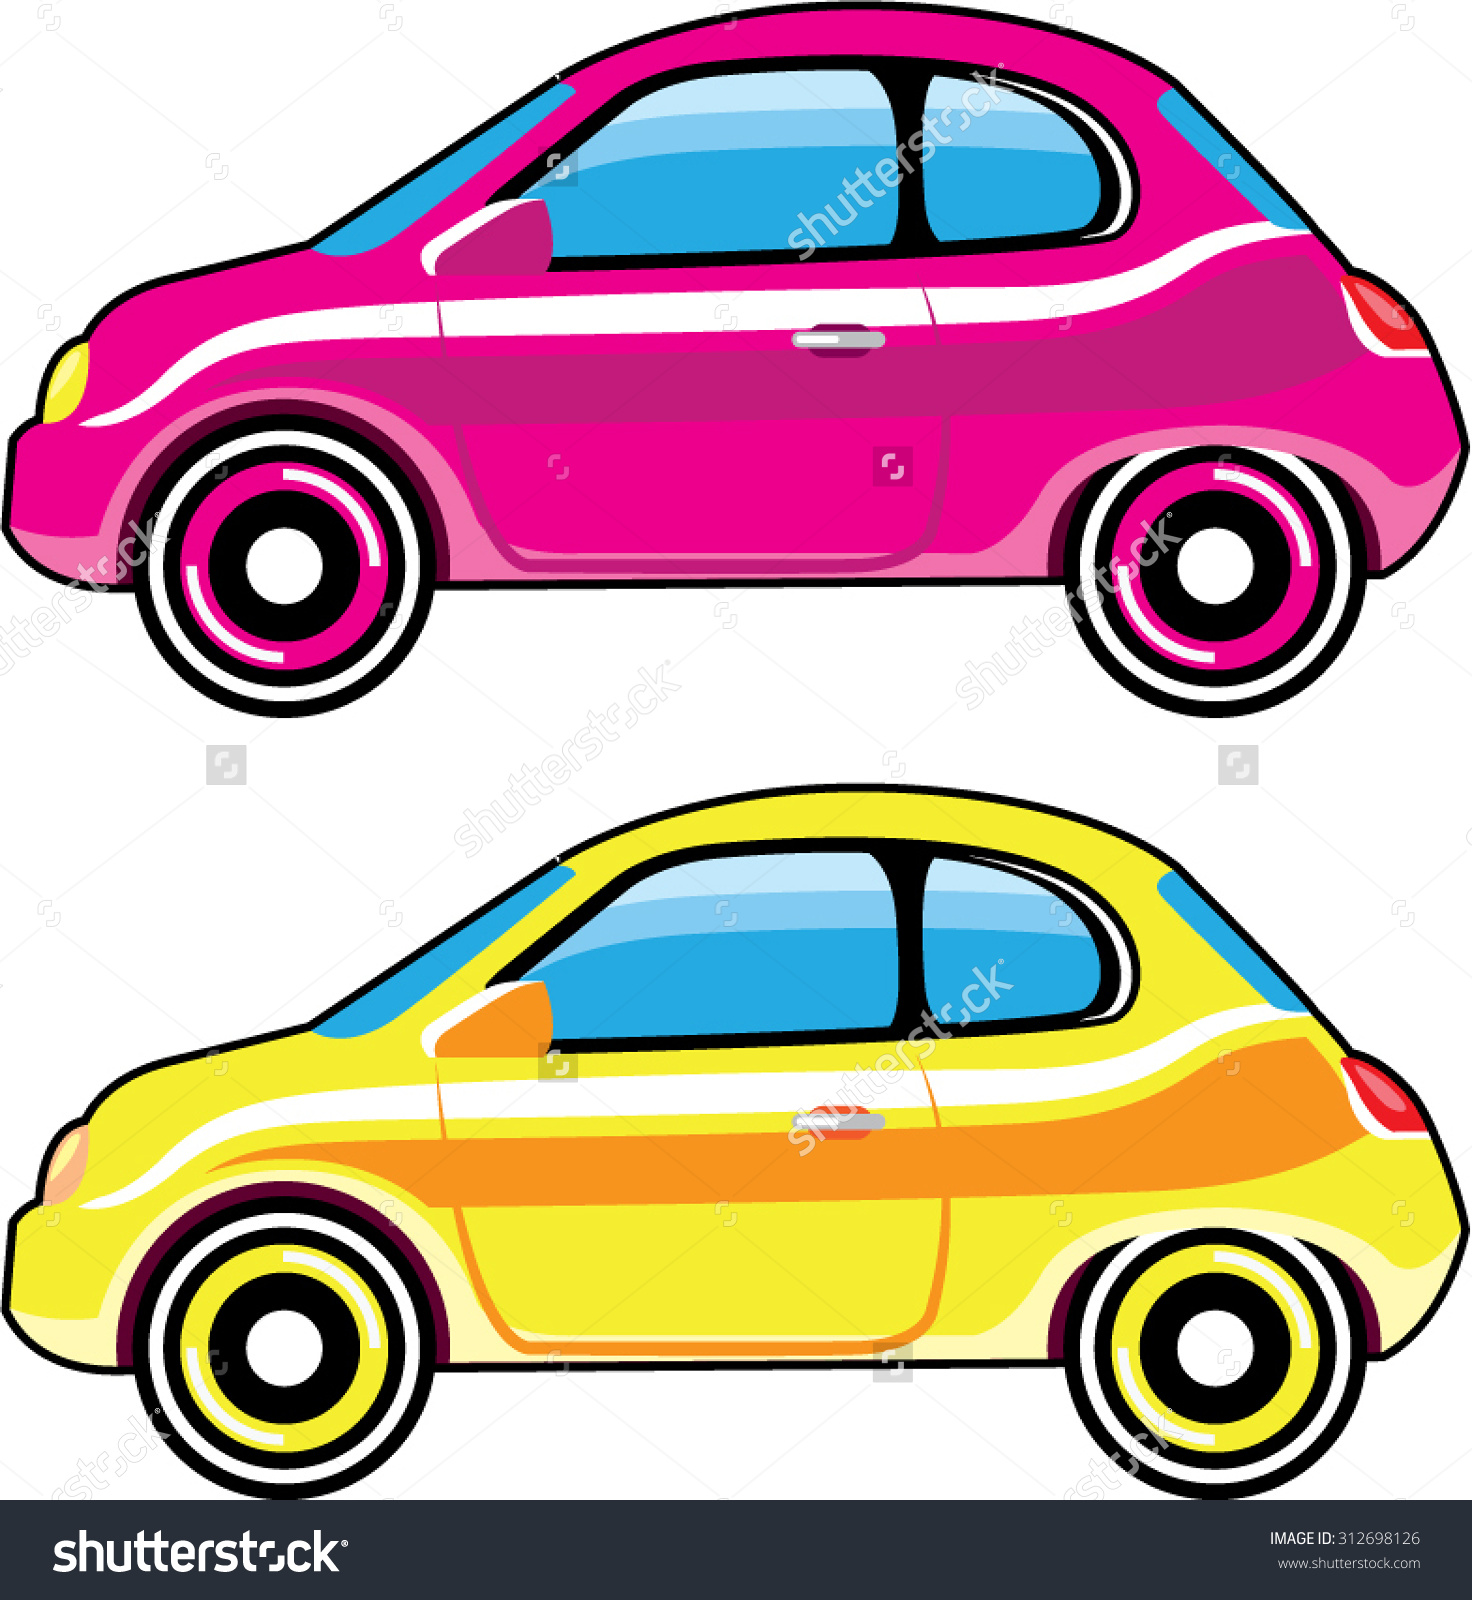 Tiny Tiny Small Car Mini Vehicle Stock Vector 312698126.